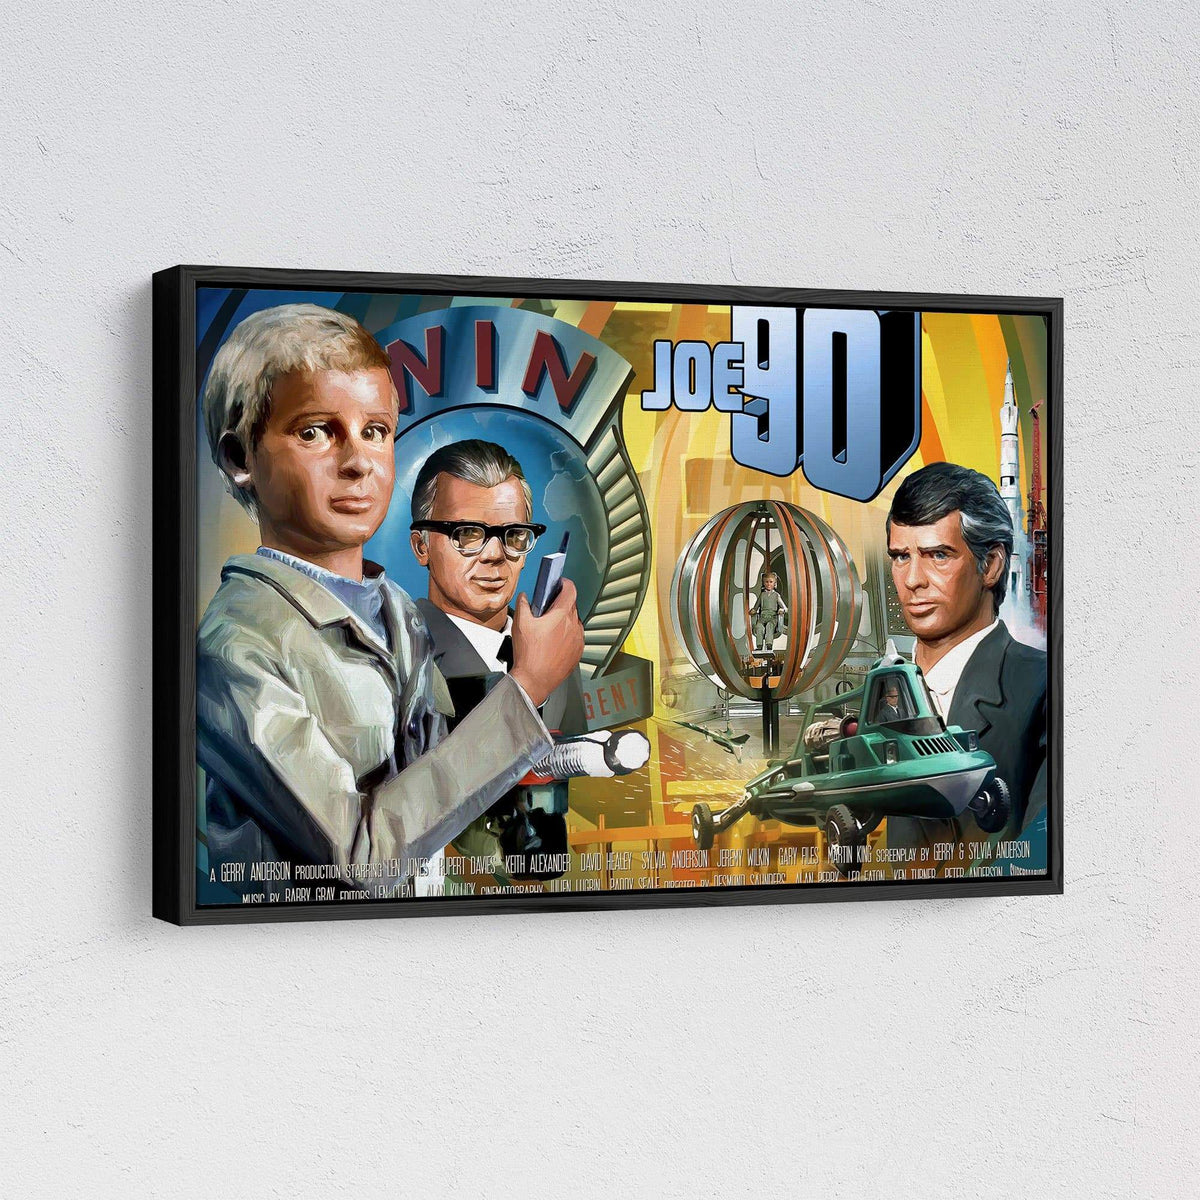 Joe 90 Framed Canvas Print [Official & Exclusive] - The Gerry Anderson Store